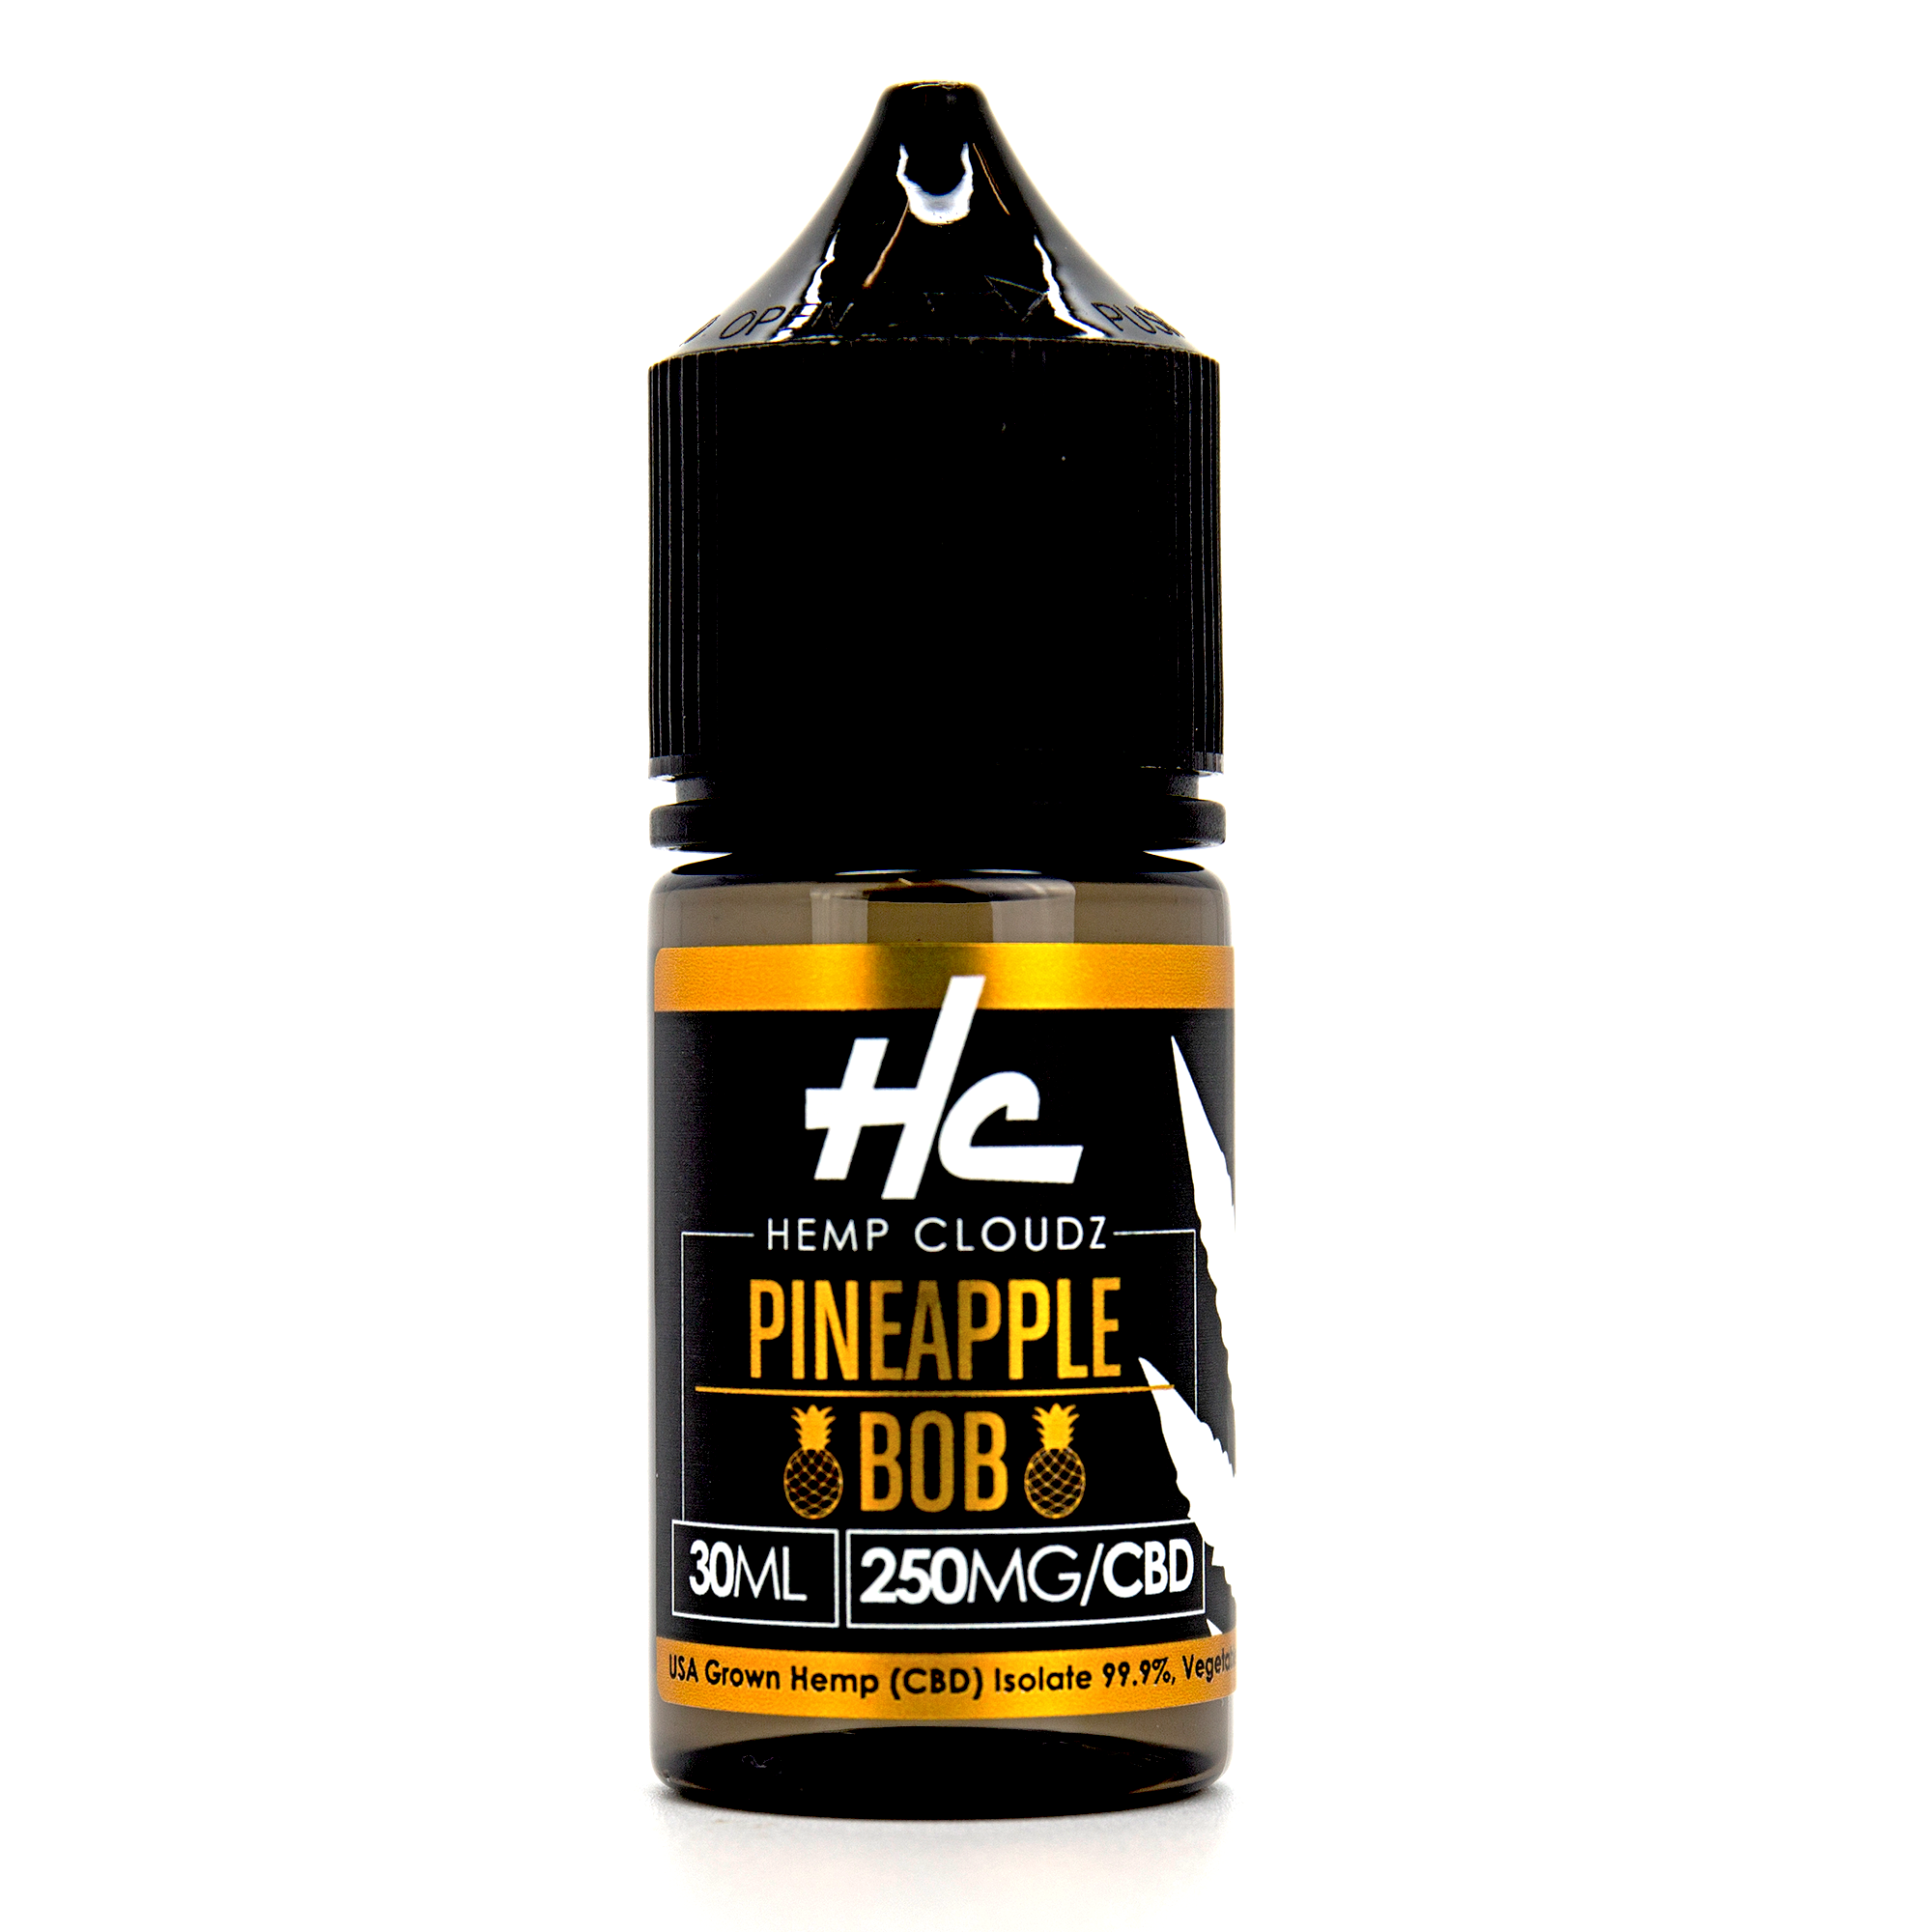 Hemp Cloudz Pineapple bob - Freeman CBD